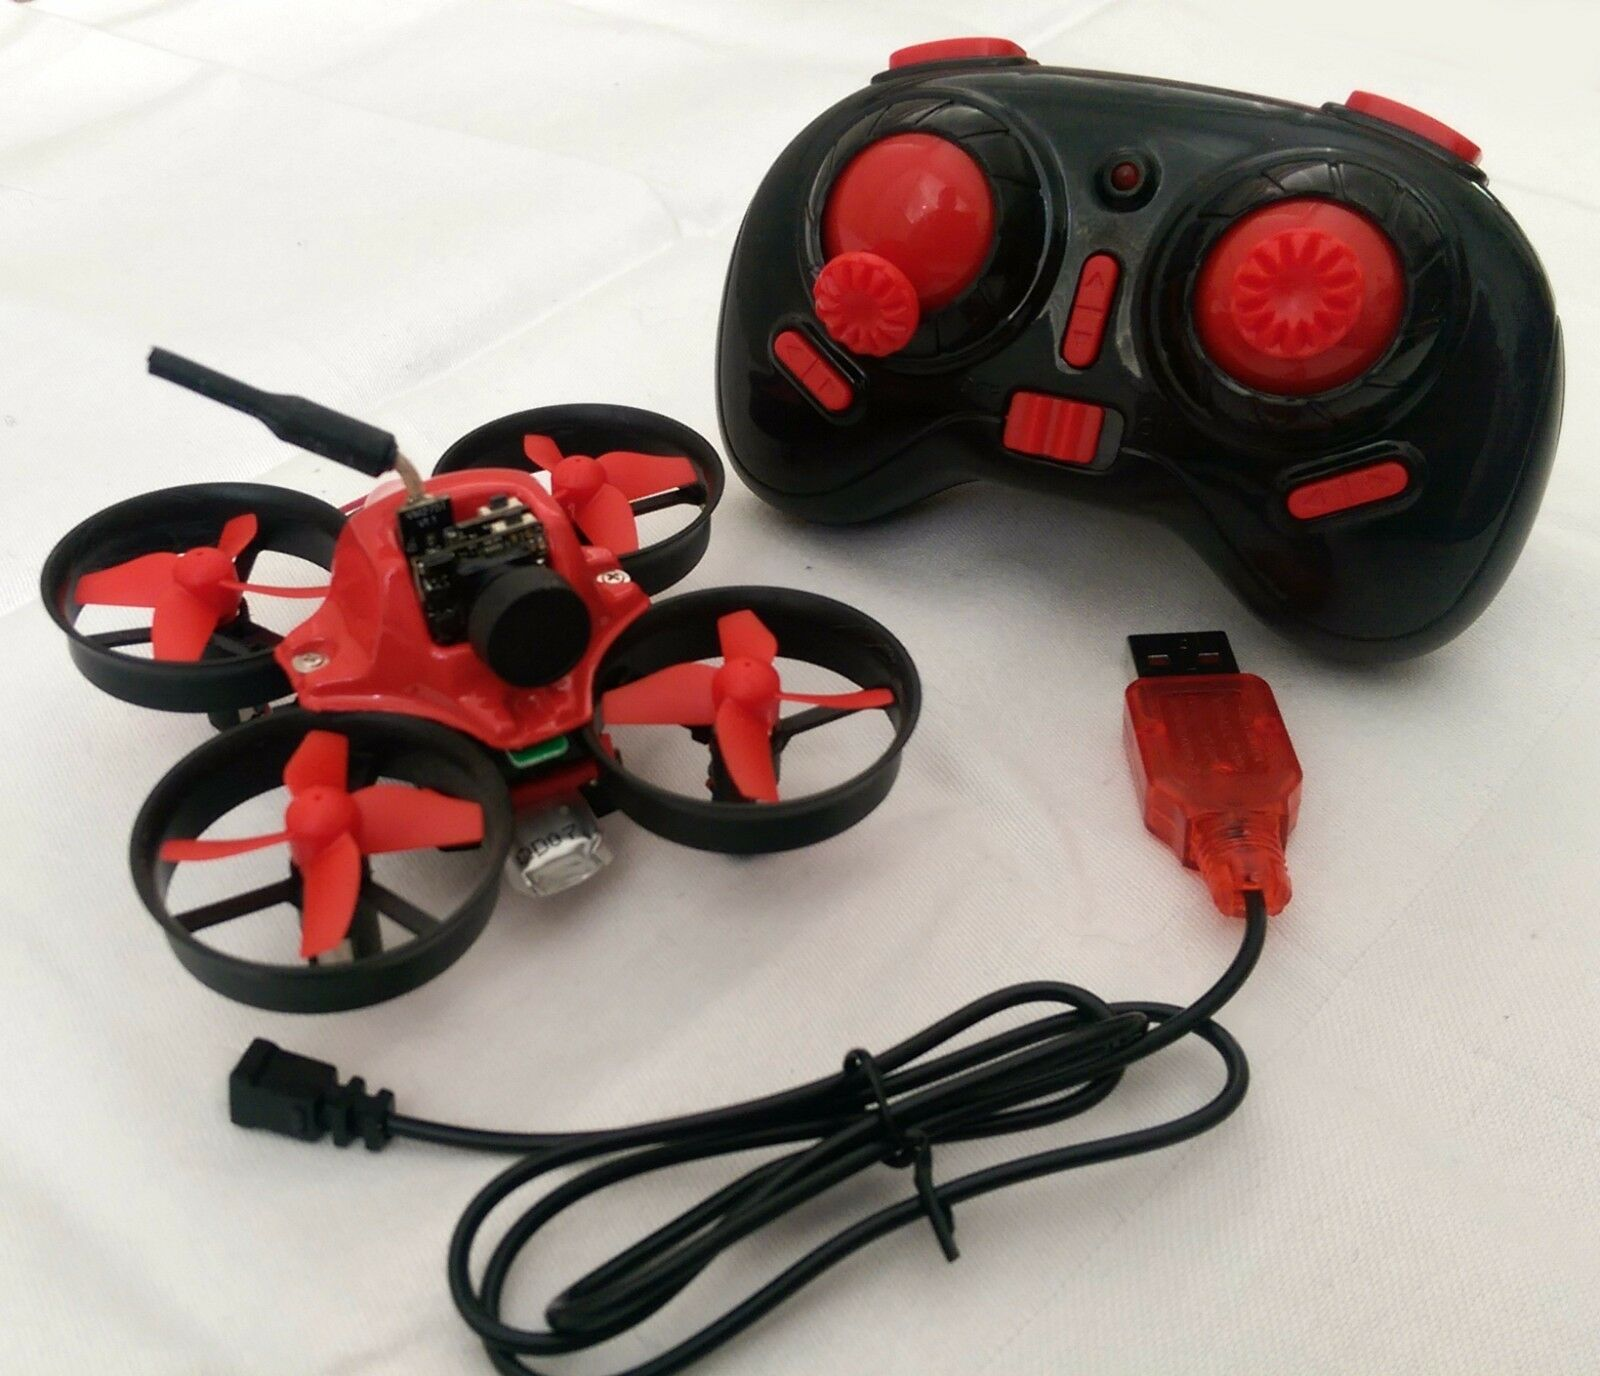 Markerfire RC FPV Indoor Micro Racing Drone Ready To Fly RTF Tiny Whoop UK